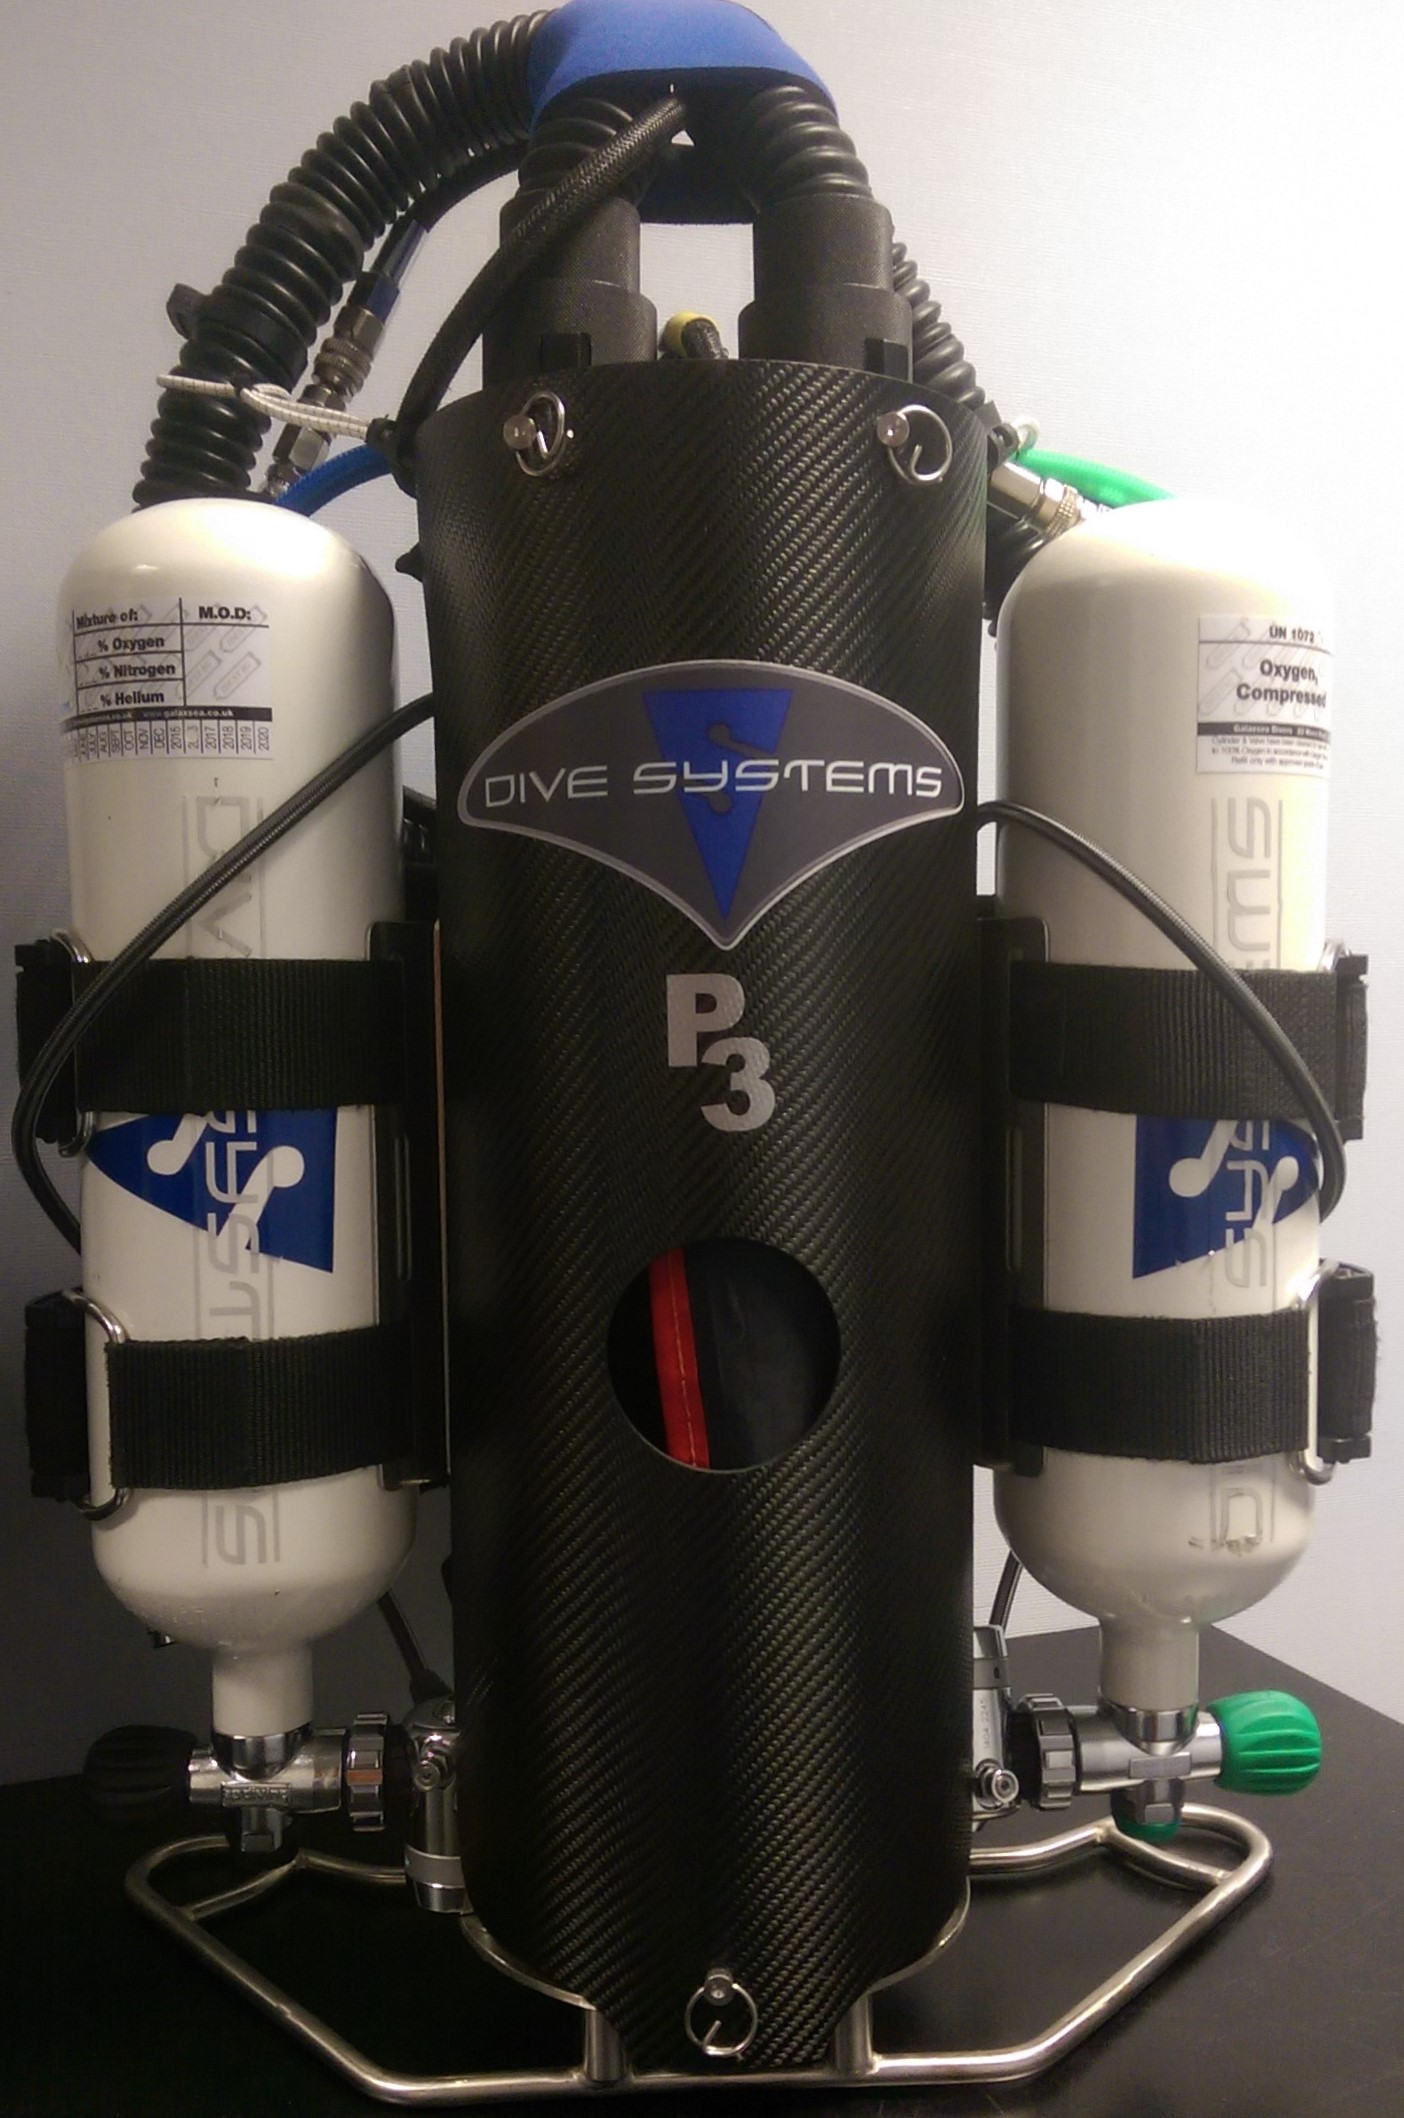 Dive-Systems-Proteus-P2-Backmount-Rebreather-0022.jpg